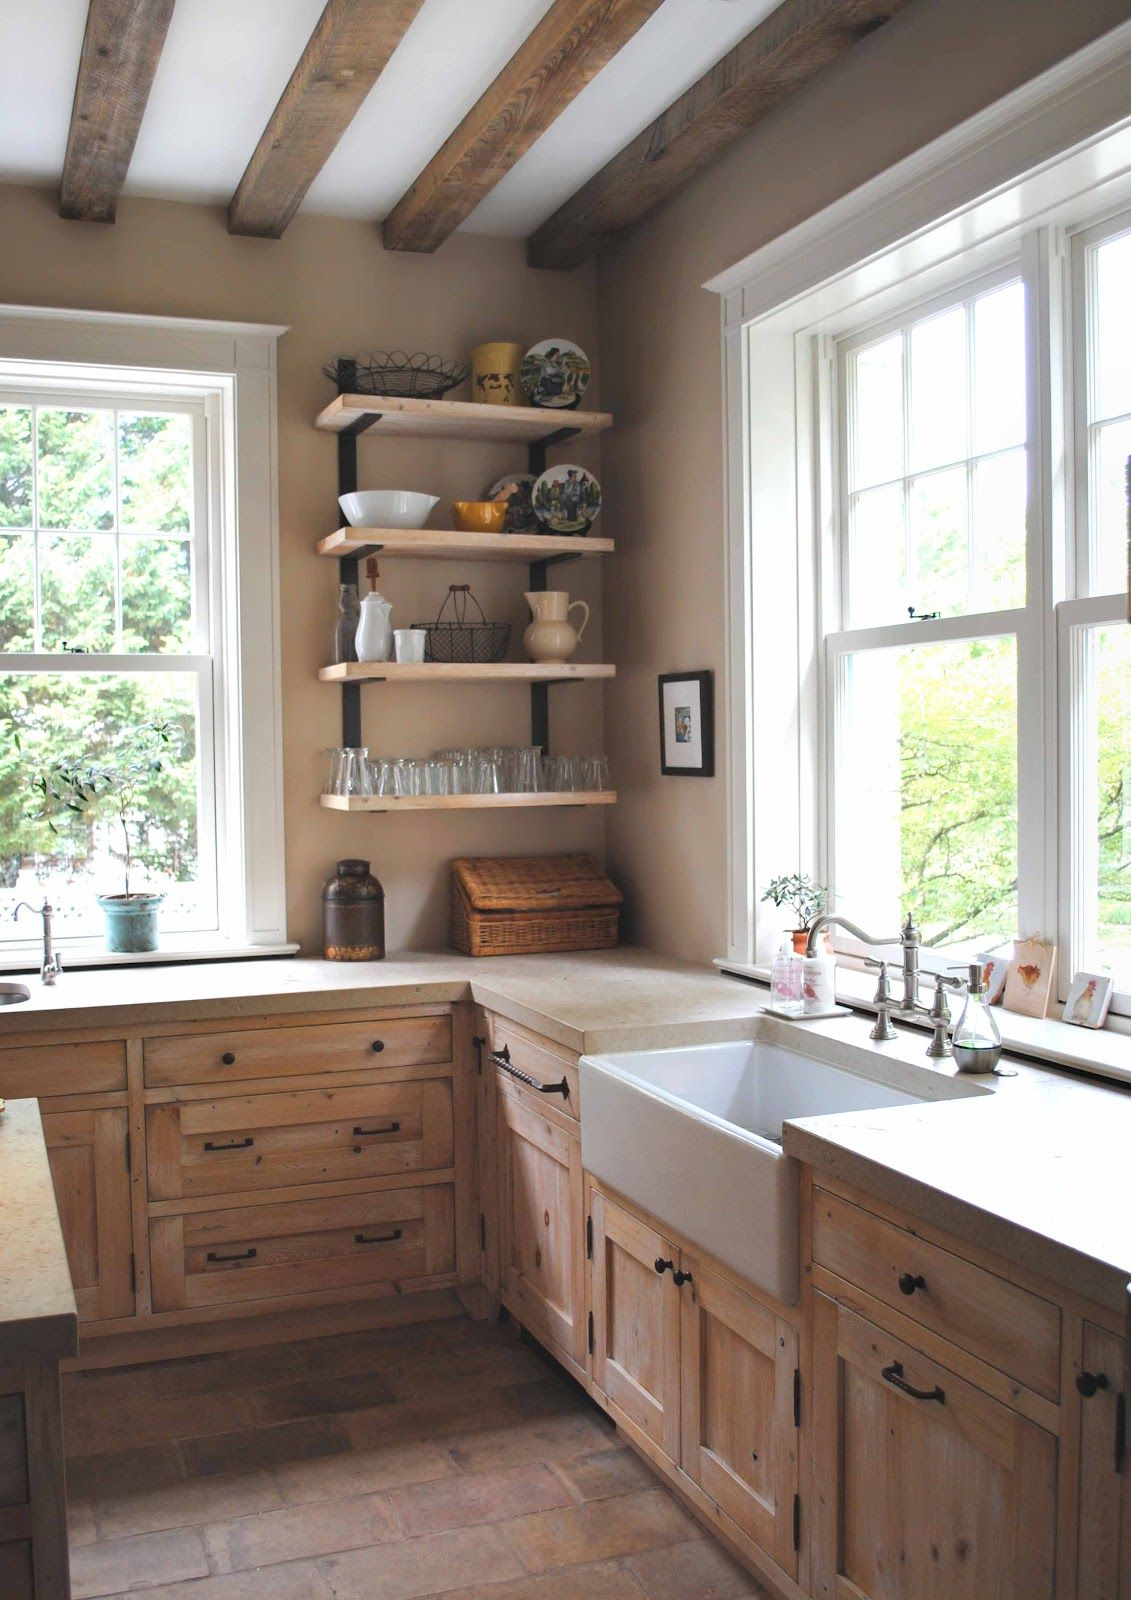 23 Rustic Country Kitchen Design Ideas to Jump Start Your Next ...